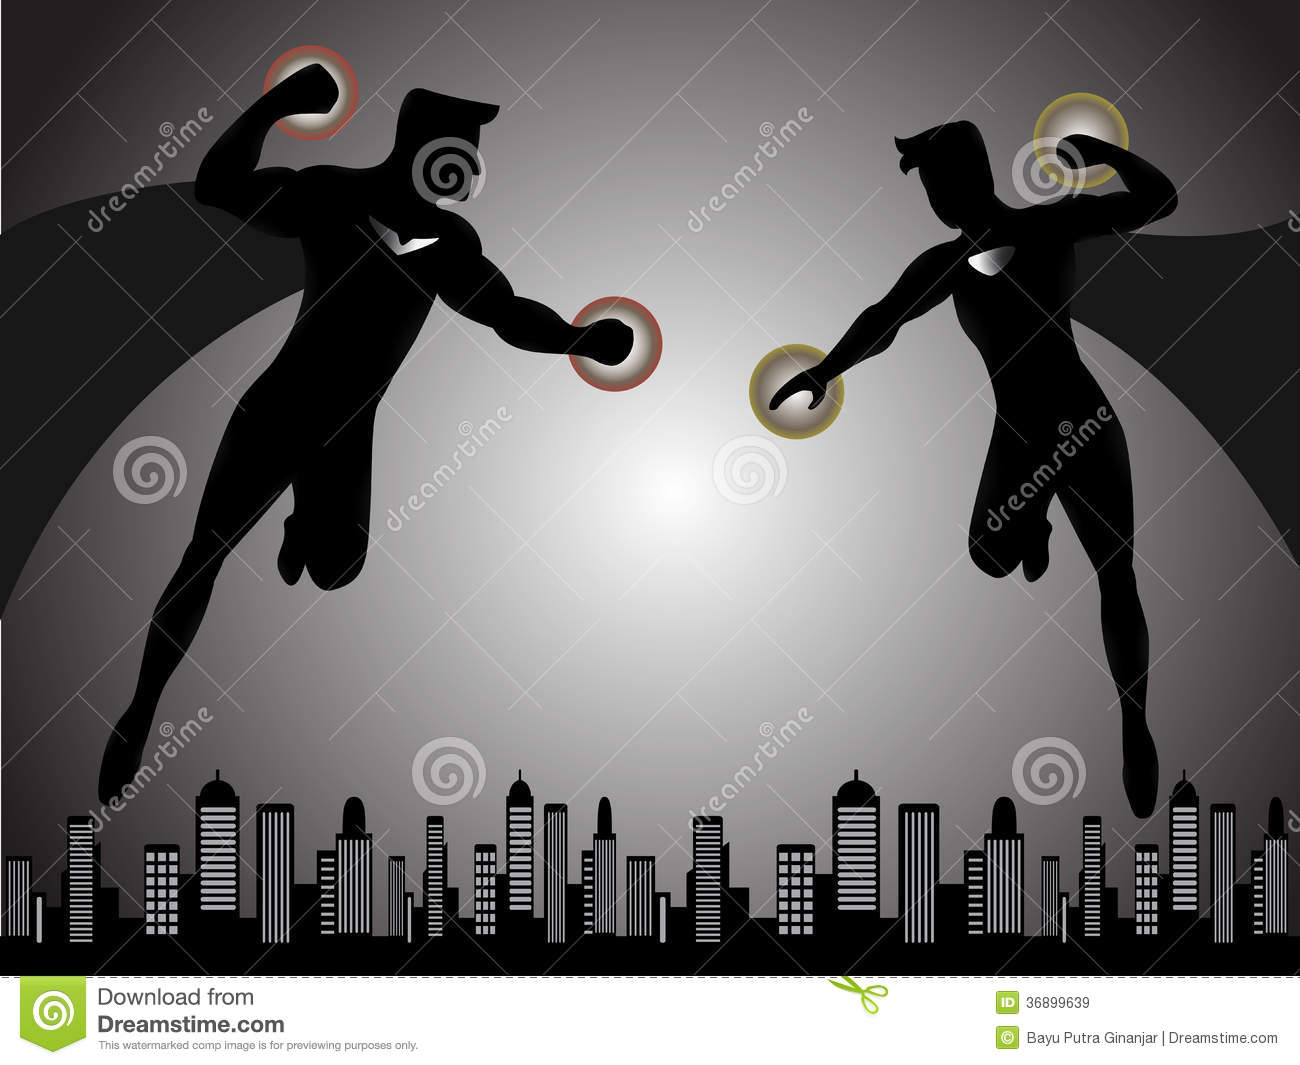 Superhero Fight Silhouette Royalty Free Stock Images